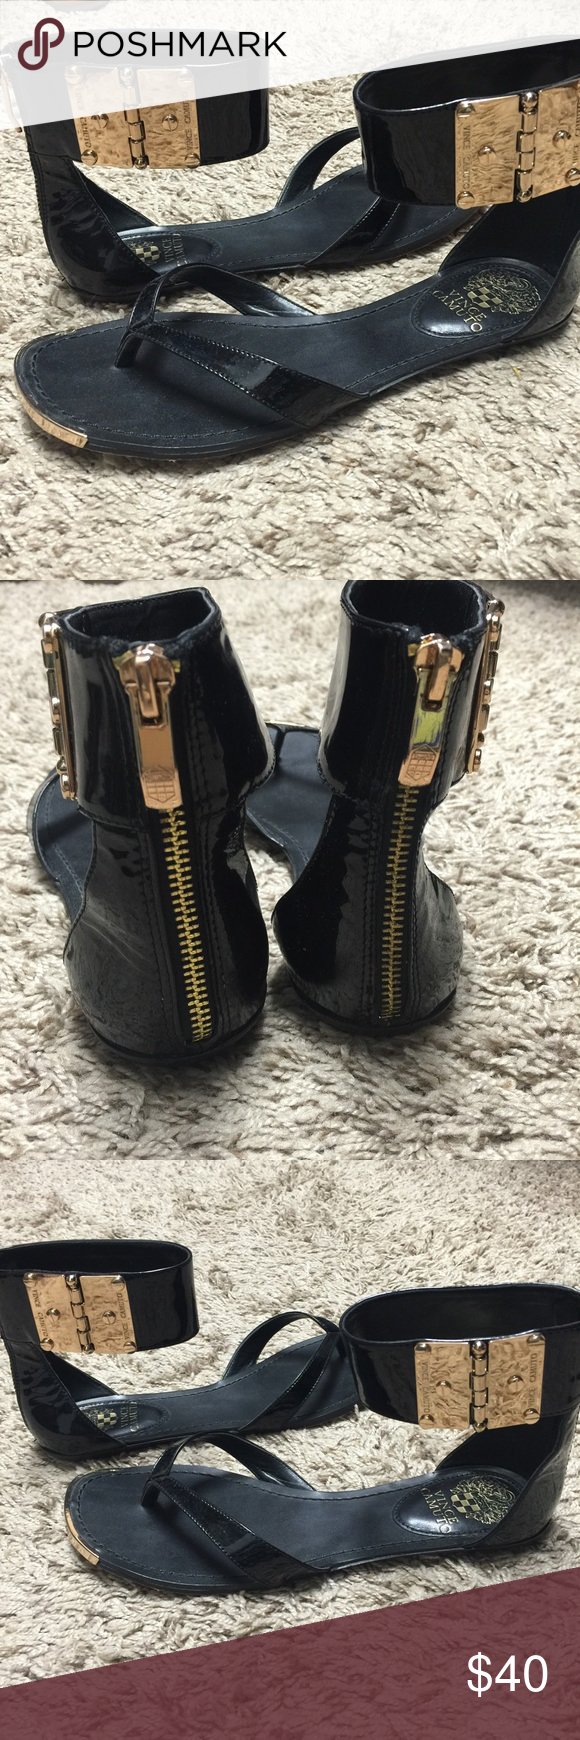 Vince Camuto black and gold flat sandal I'm so sad that these don't fit me. They are an 8 but I think I need 8.5. They are in great condition as you can see the bottoms have little wear. Vince Camuto Shoes Sandals